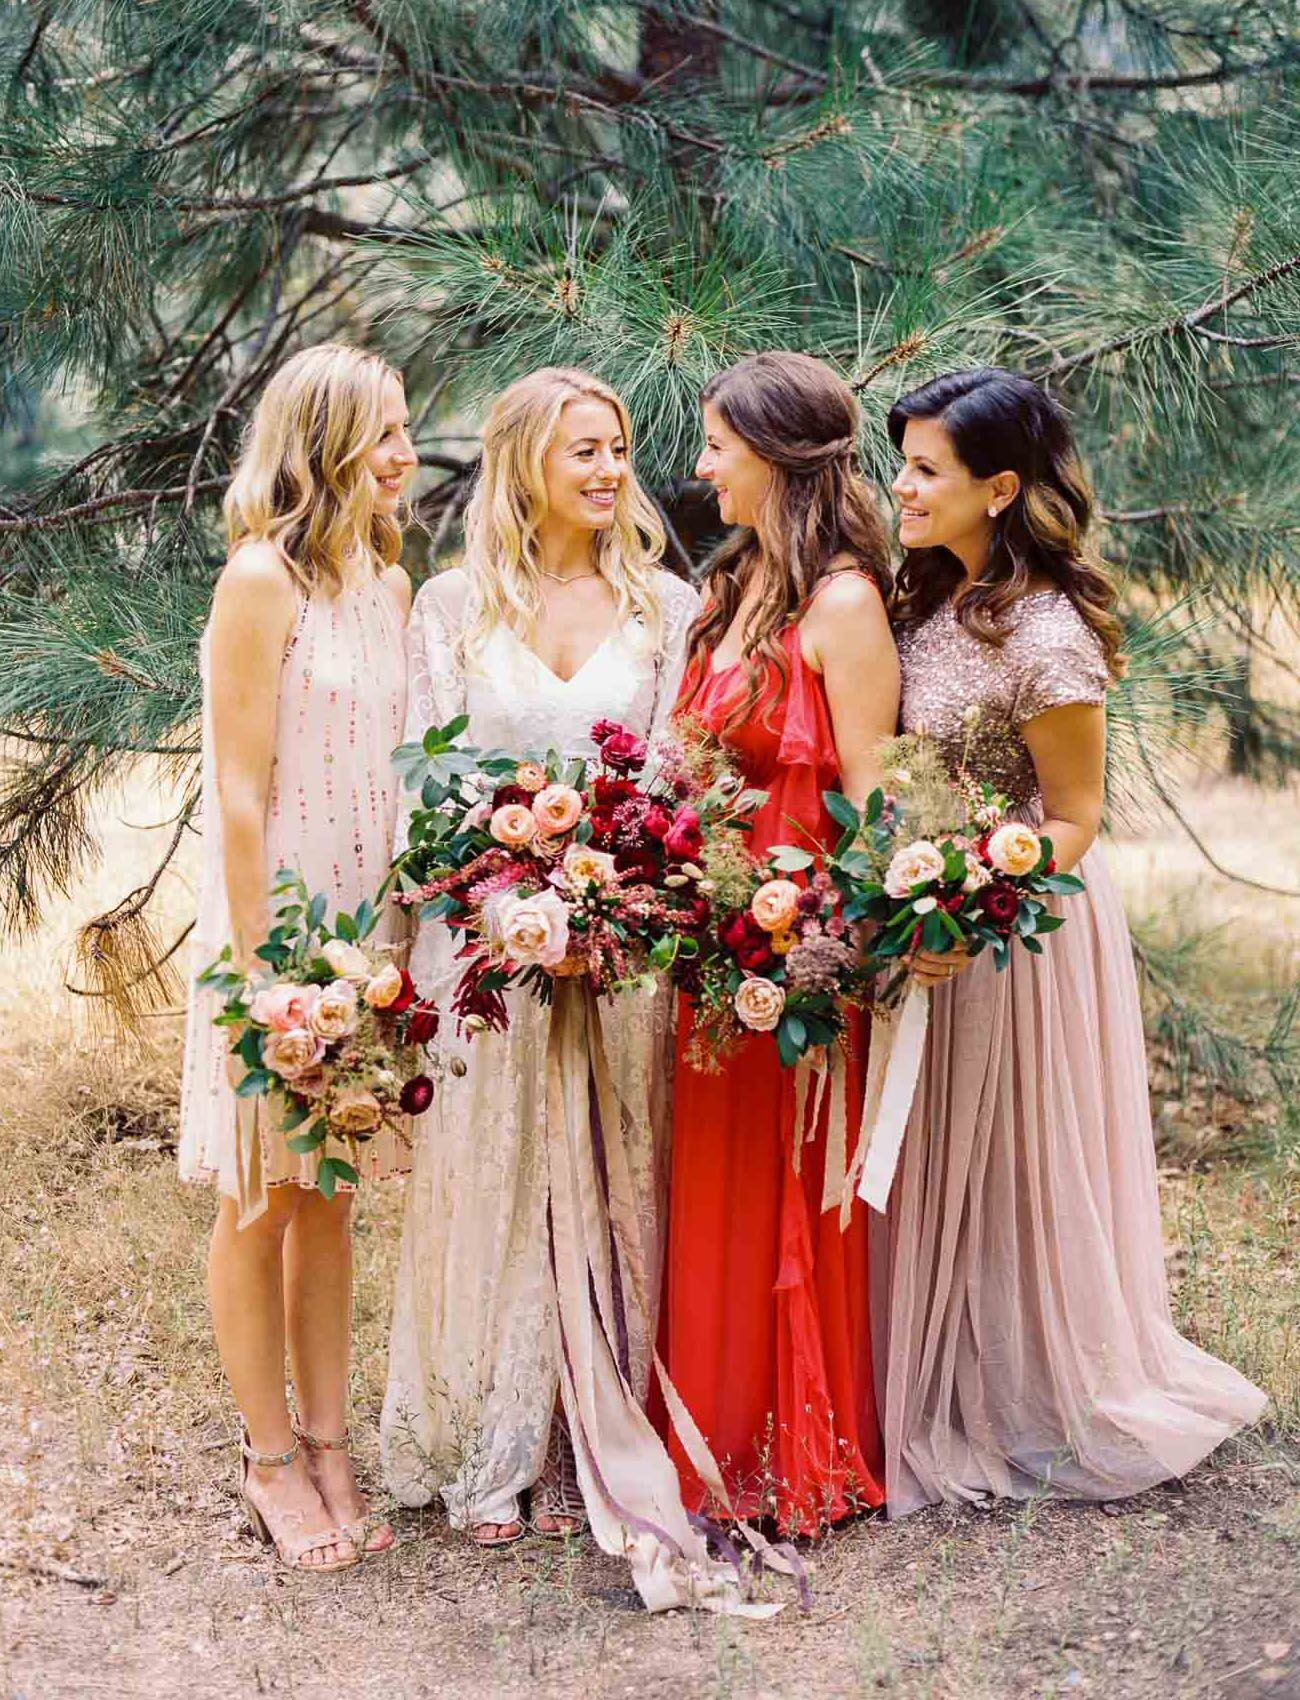 When A Wedding Planner Gets Married Bohemian Inspired Nuptials In The Heart Of Yosemite Green Wedding Shoes Bridesmaid Dresses Boho Wedding Bridesmaids Boho Bridesmaid